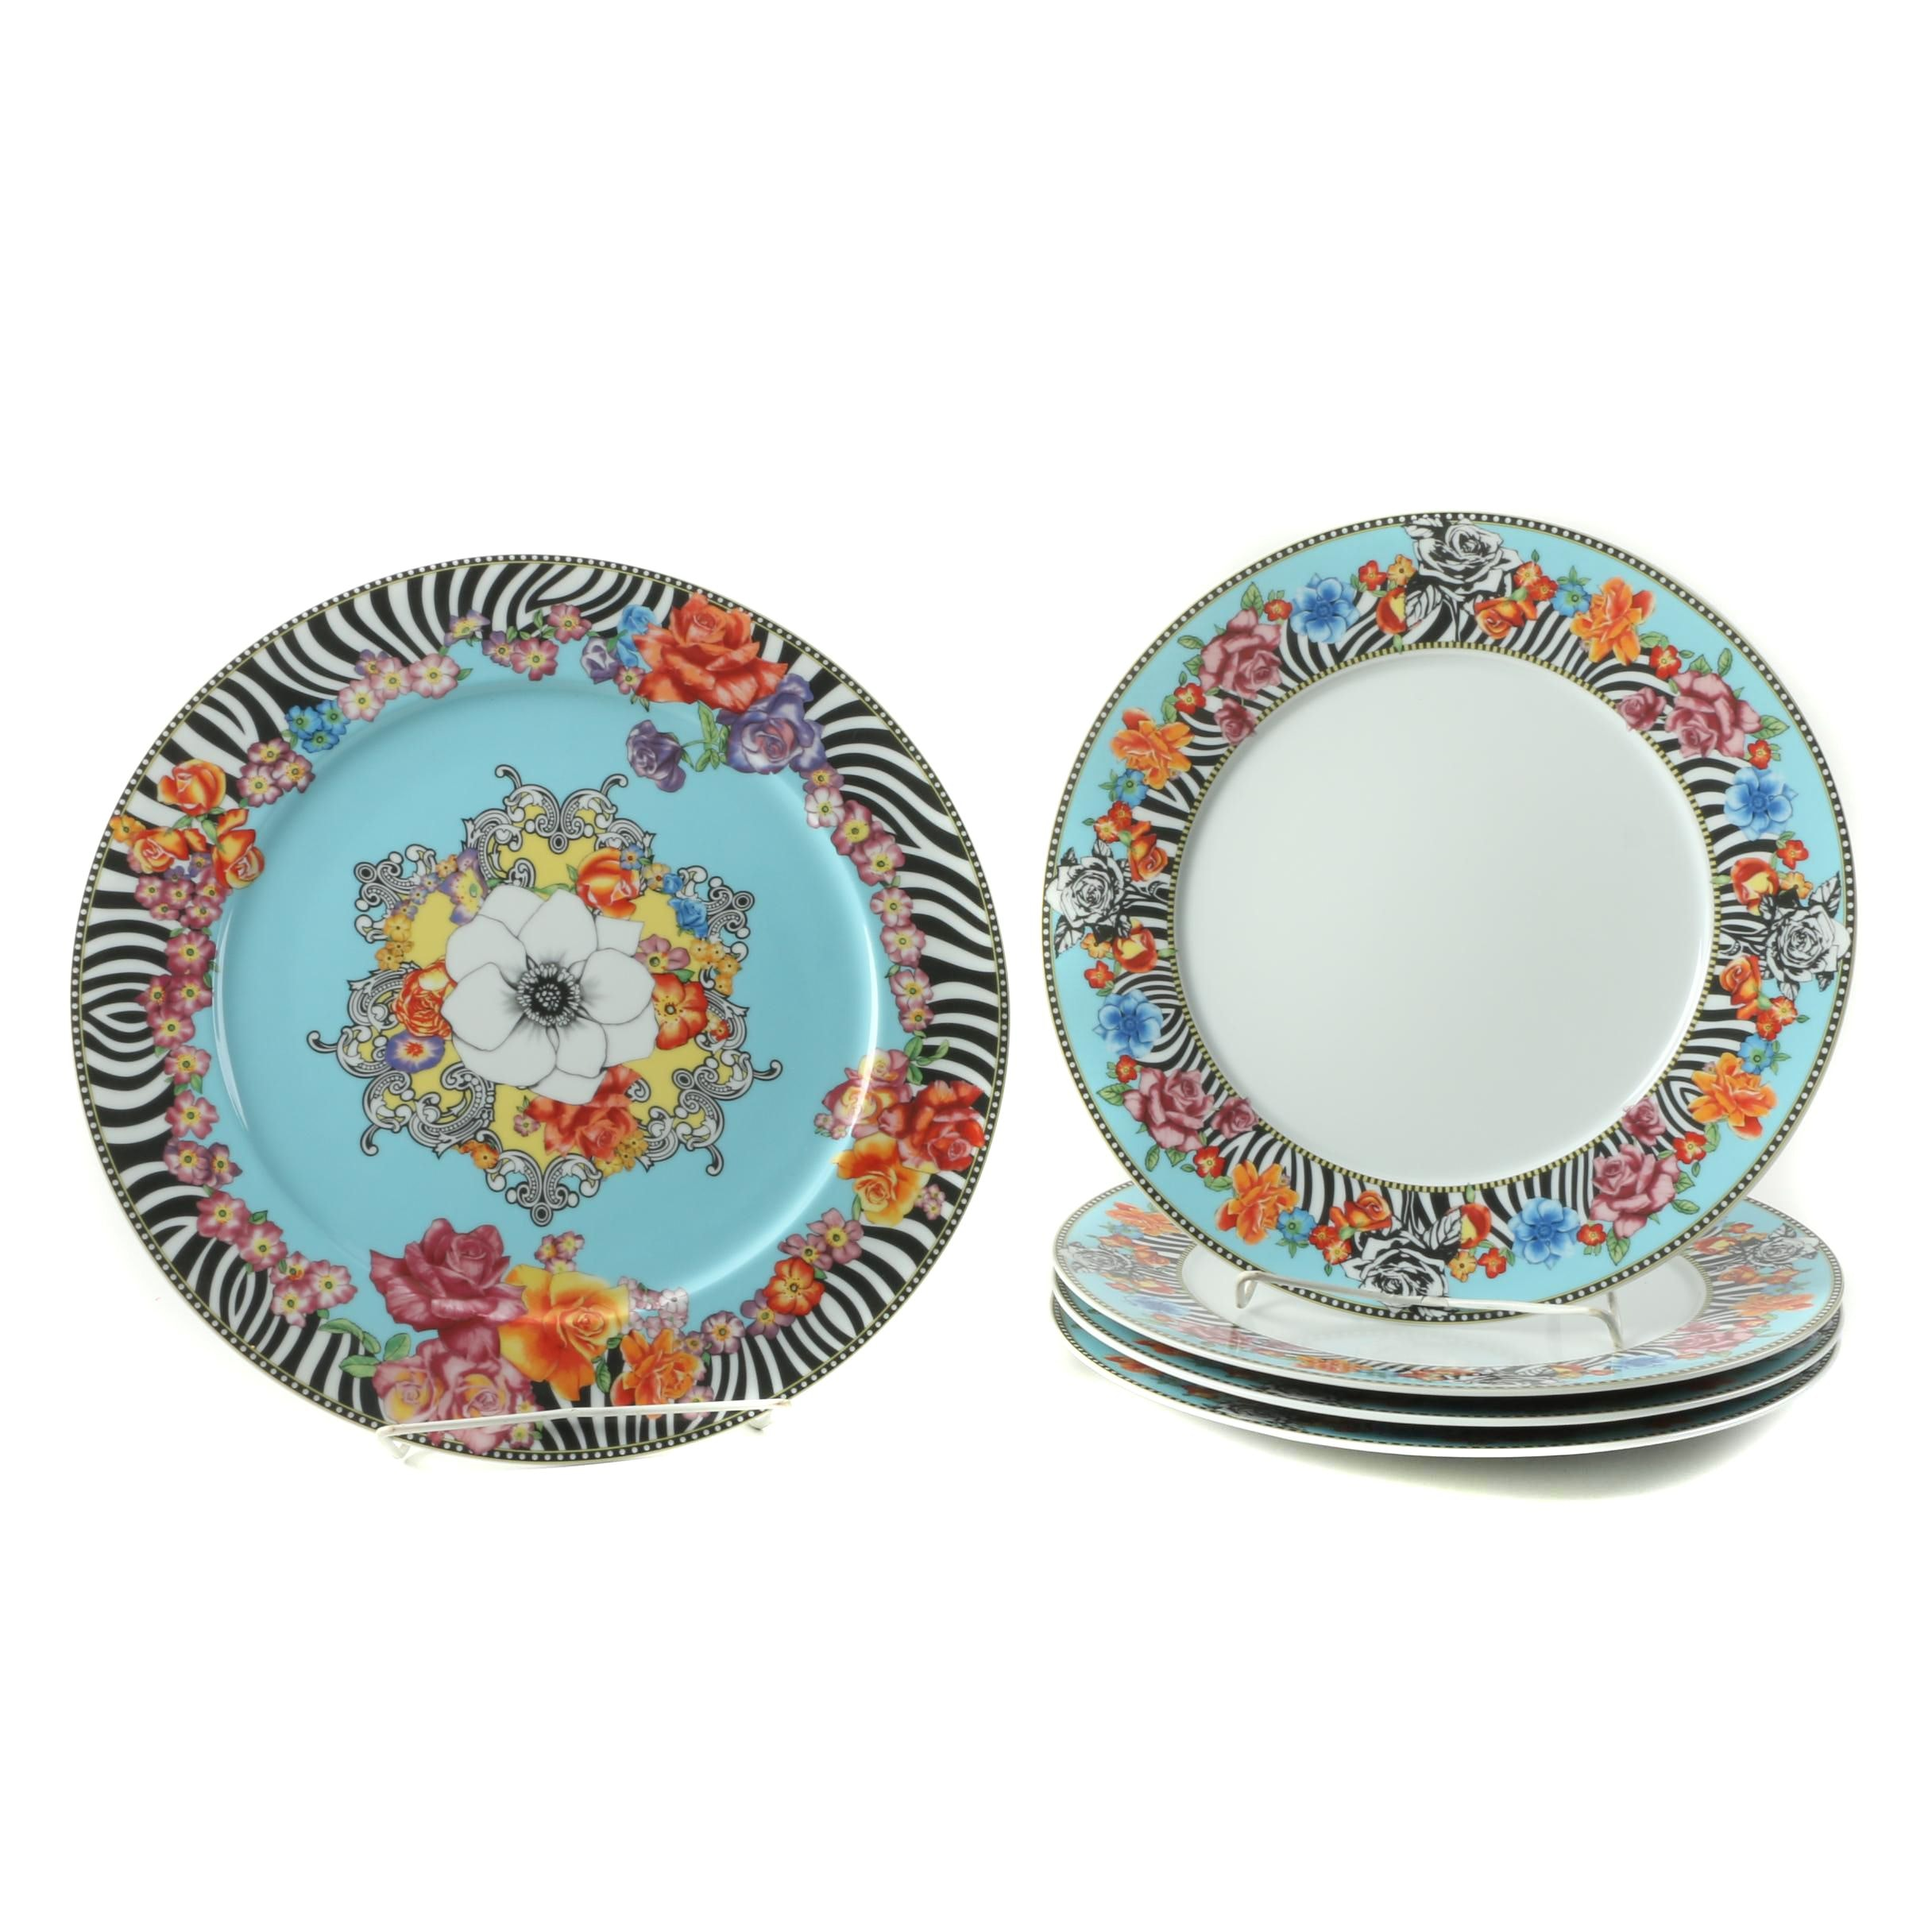 Rosenthal- Continental Versace \ Hot Flowers\  Plates and Serving Platter ...  sc 1 st  EBTH.com & Rosenthal- Continental Versace \